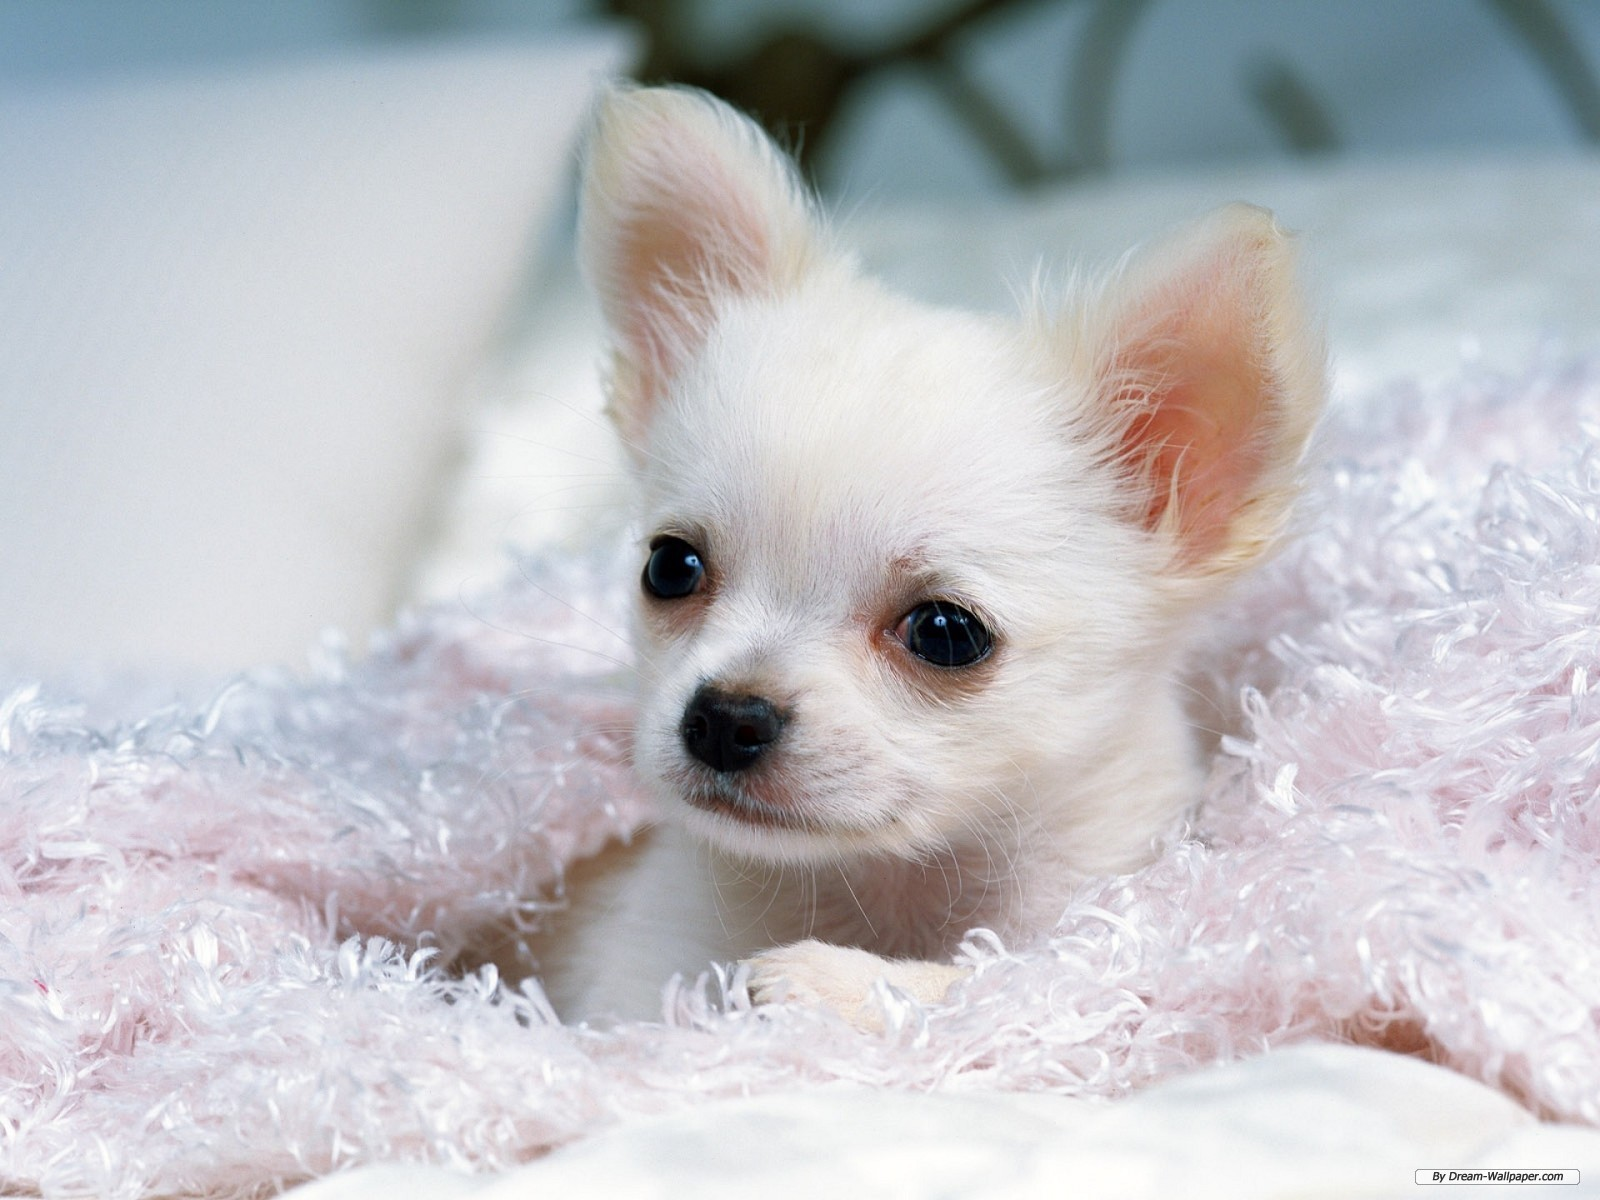 Chihuahua puppy looking under the blanket